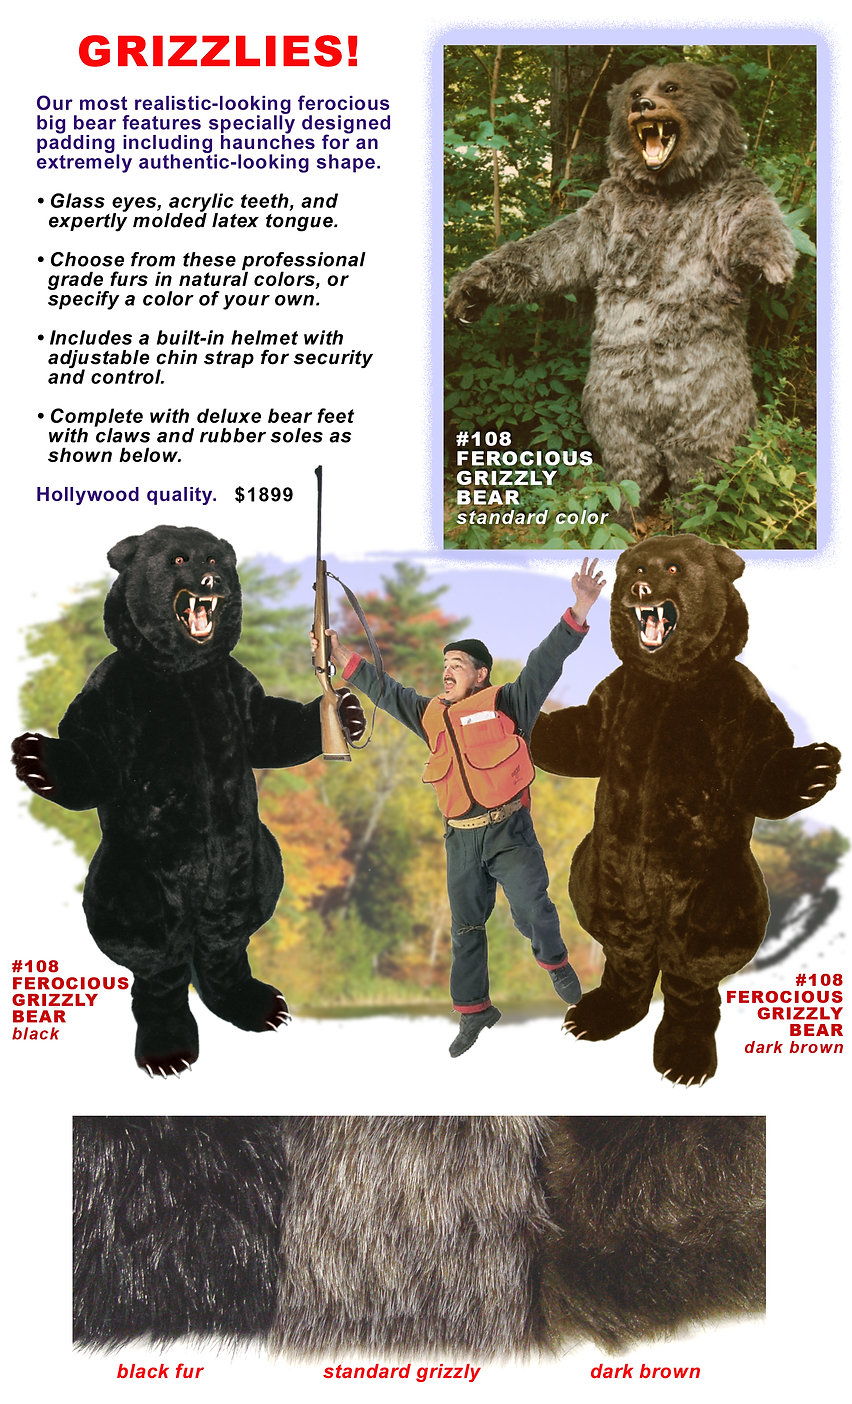 Facemakers Grizzly Bear mascot costumes